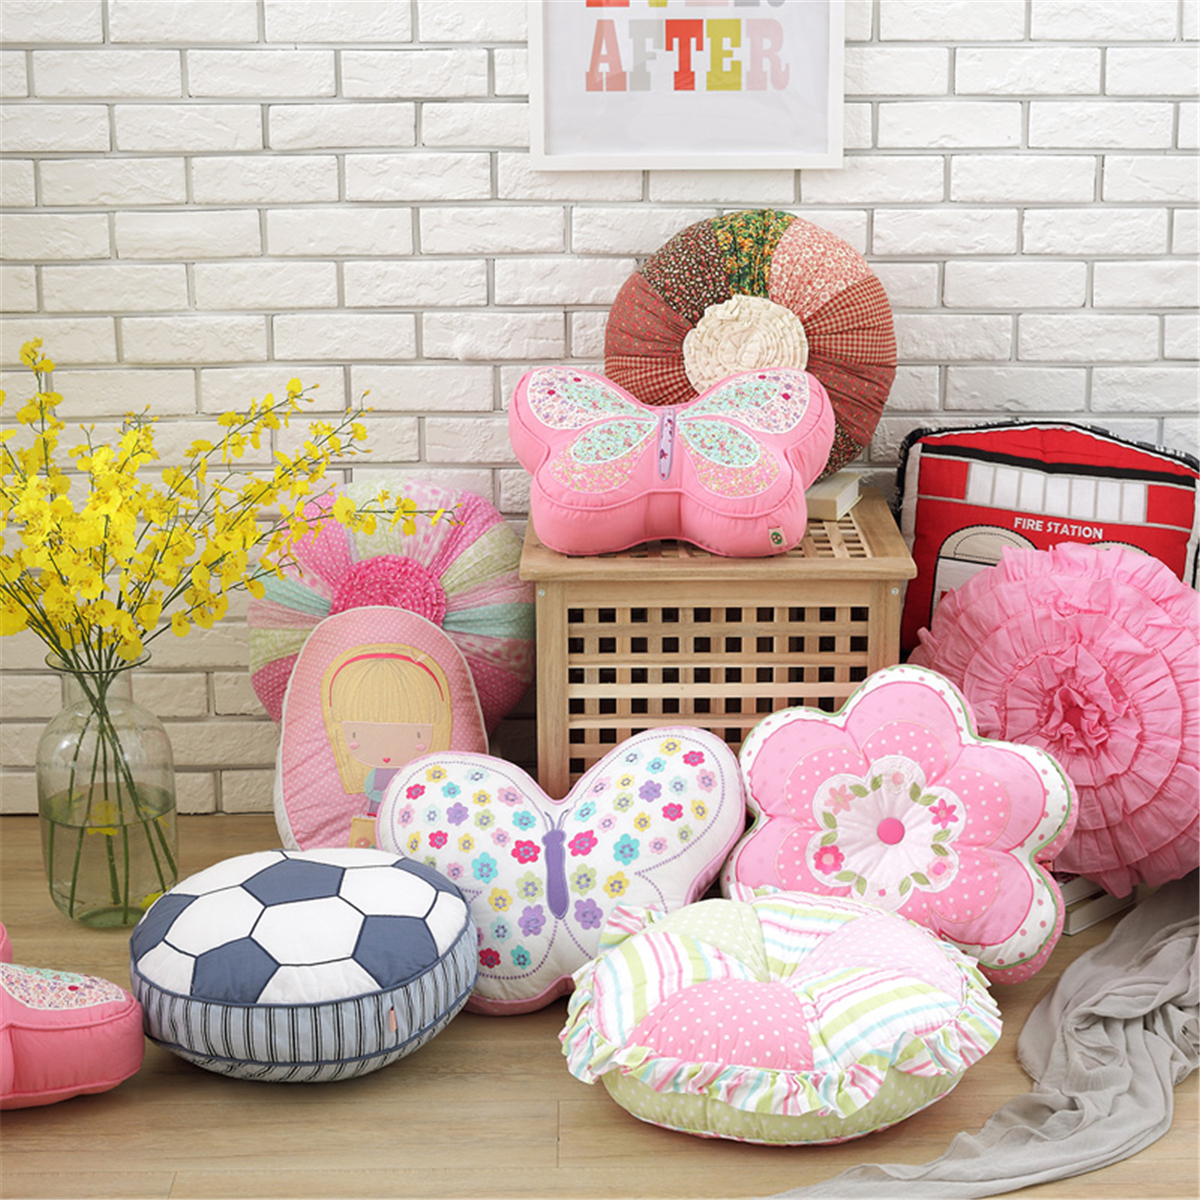 Meigar Soft Flowe Animal Plush Pillow Floor Pillow Seating Cushion Pillow Cushion for a Reading Nook, Bed Room, or Watching TV